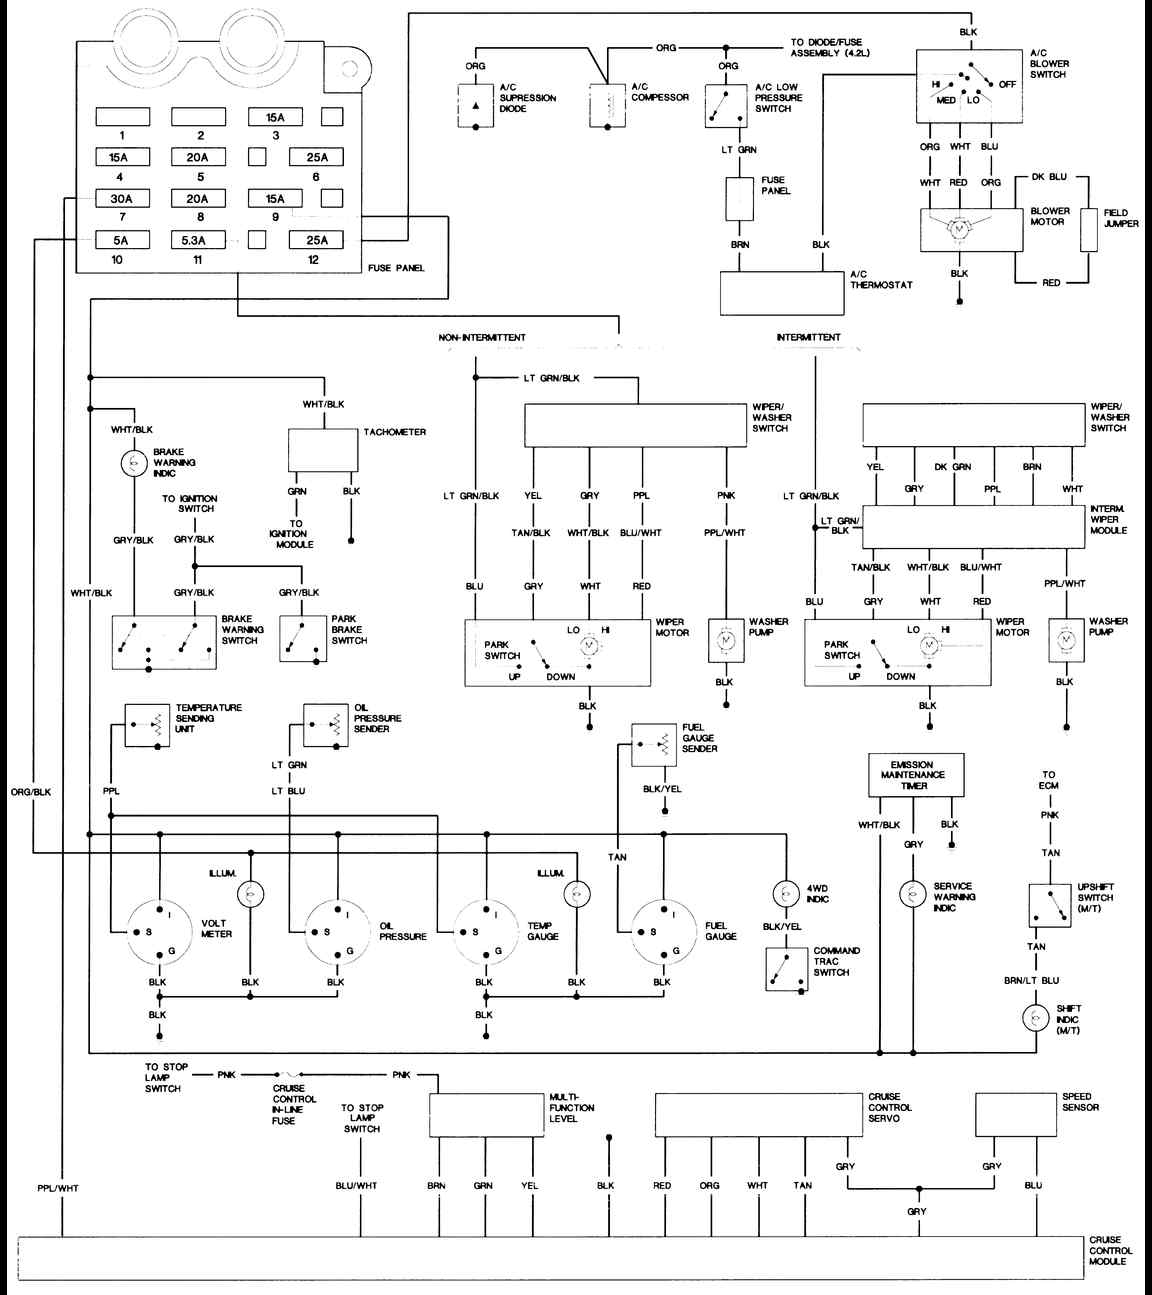 Wiring Diagrams For Jeep Wrangler Great Design Of Diagram 91 Stereo 1988 Index Freeautomechanic 2000